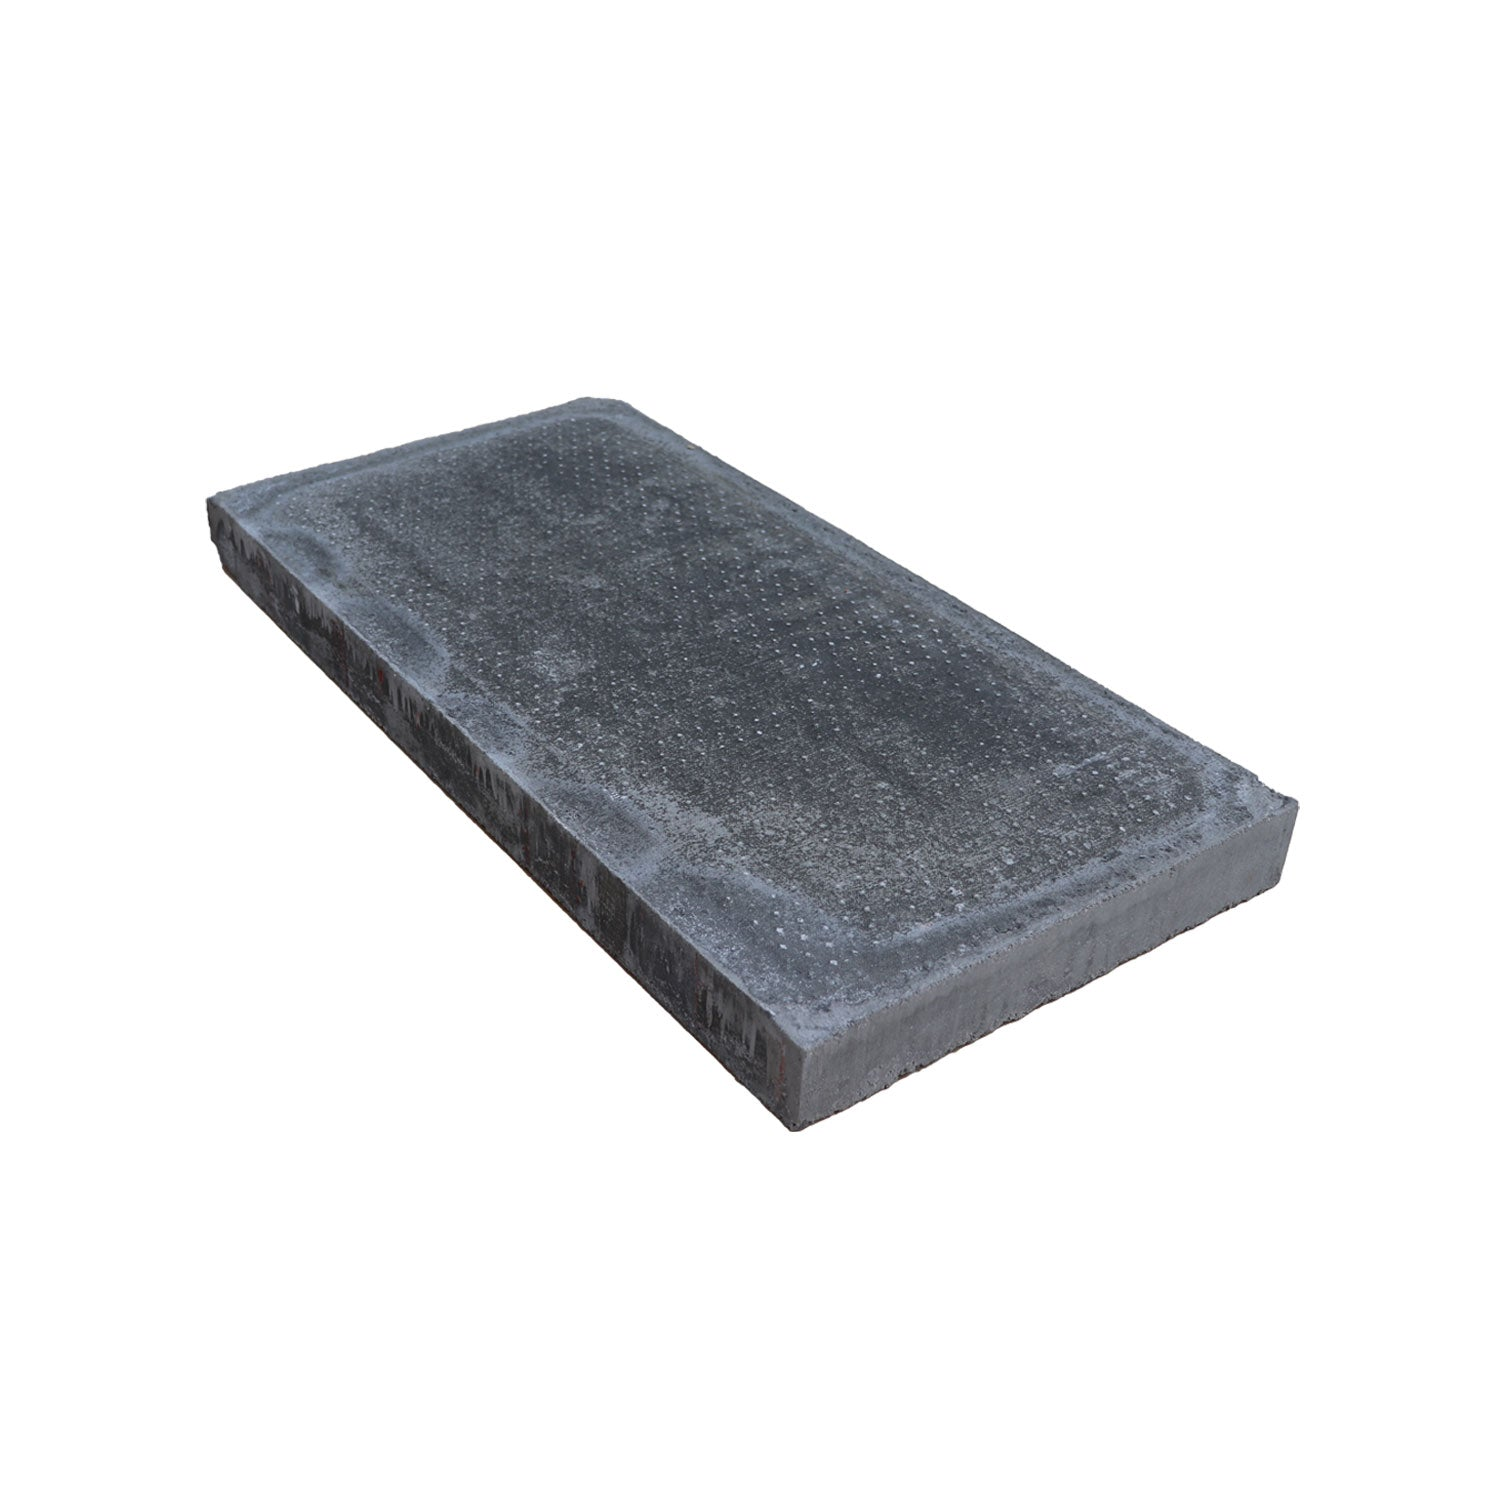 Grey Slab 600mm x 300mm x 50mm